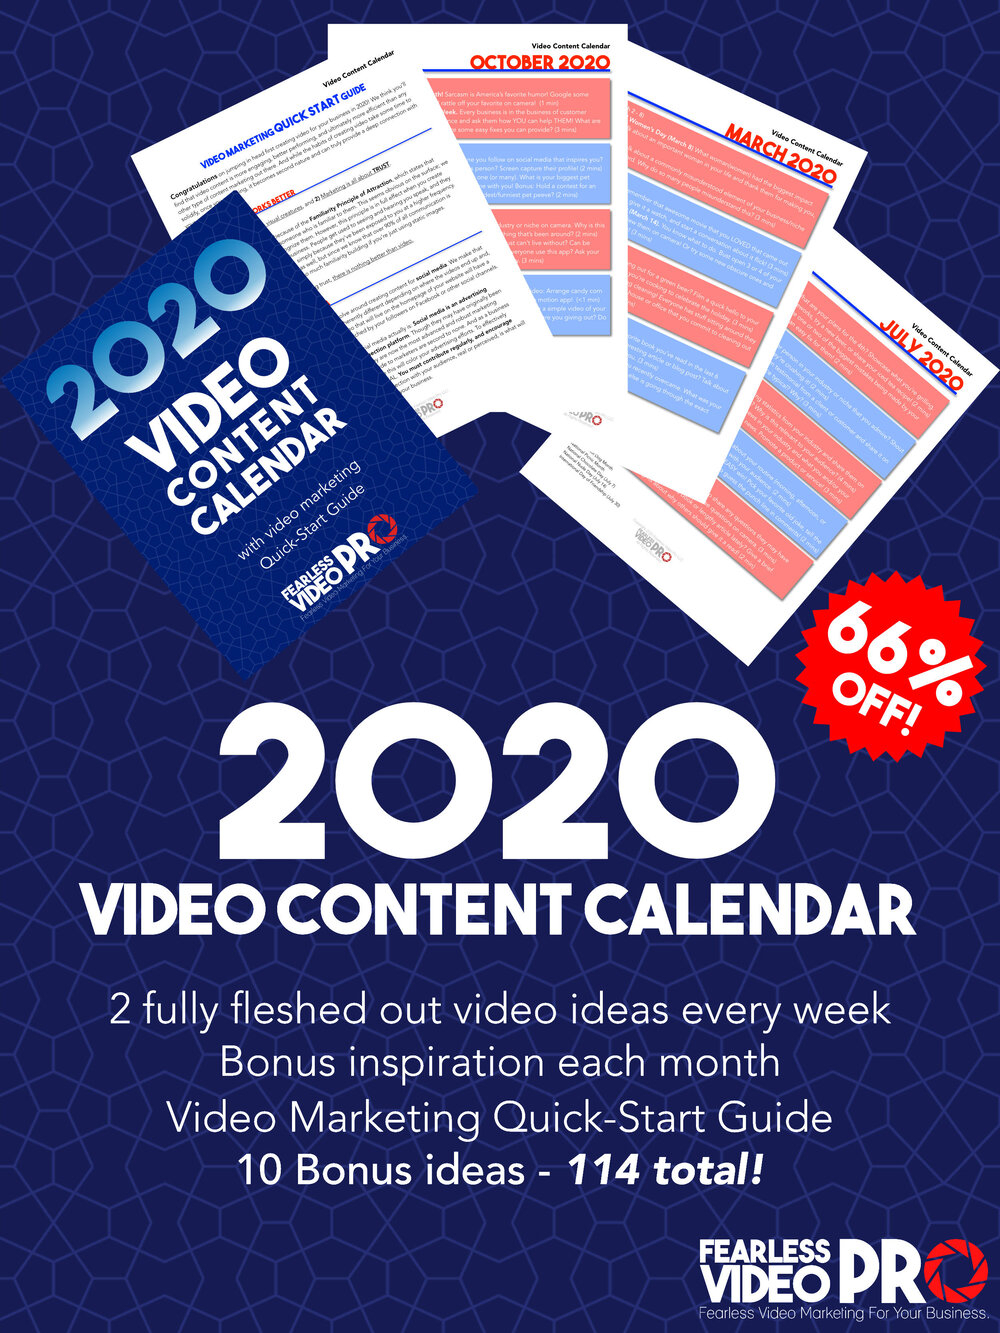 2020 Video Content Calendar — Fearless Video Pro